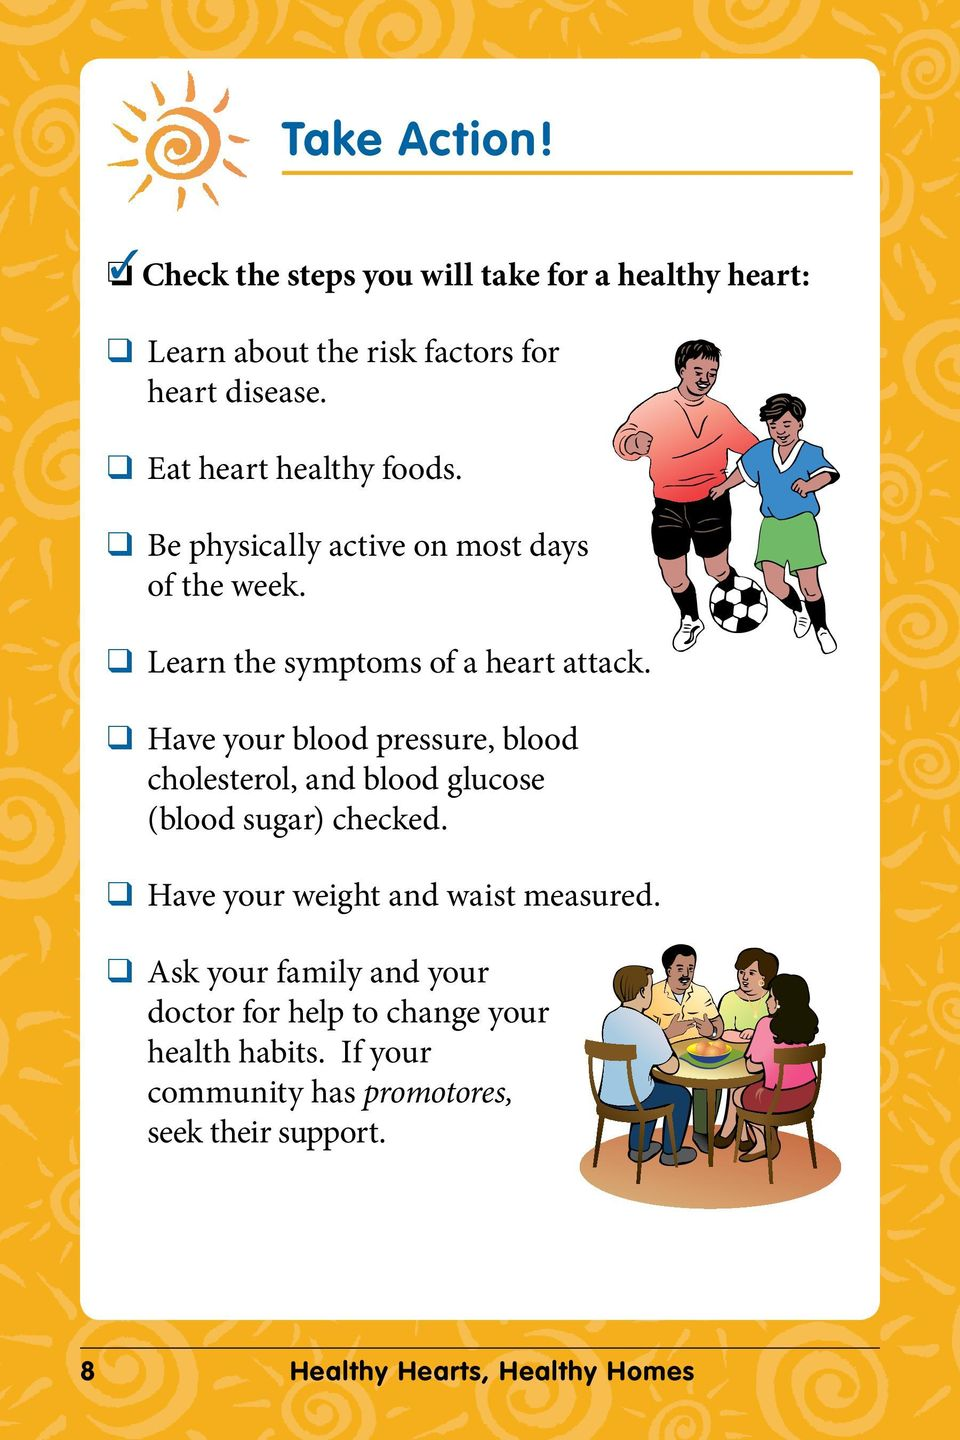 Have your blood pressure, blood cholesterol, and blood glucose (blood sugar) checked. Have your weight and waist measured.